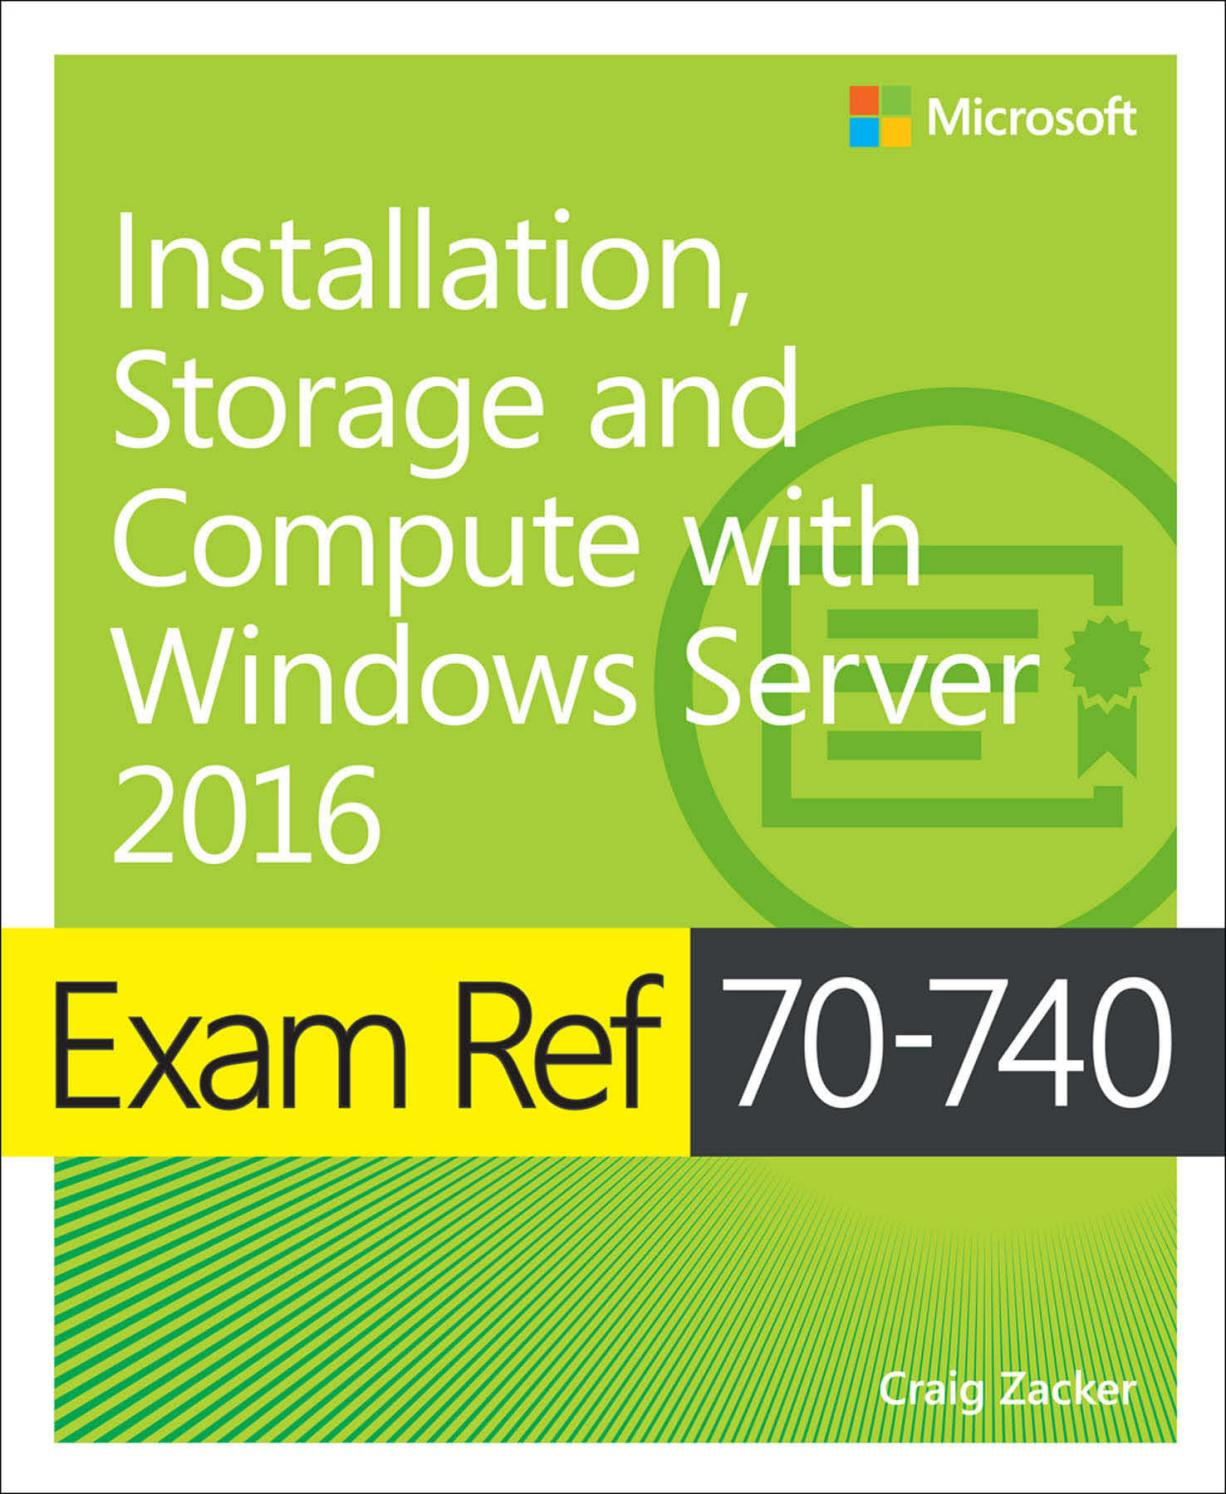 Exam ref 70 740 installation, storage and compute with